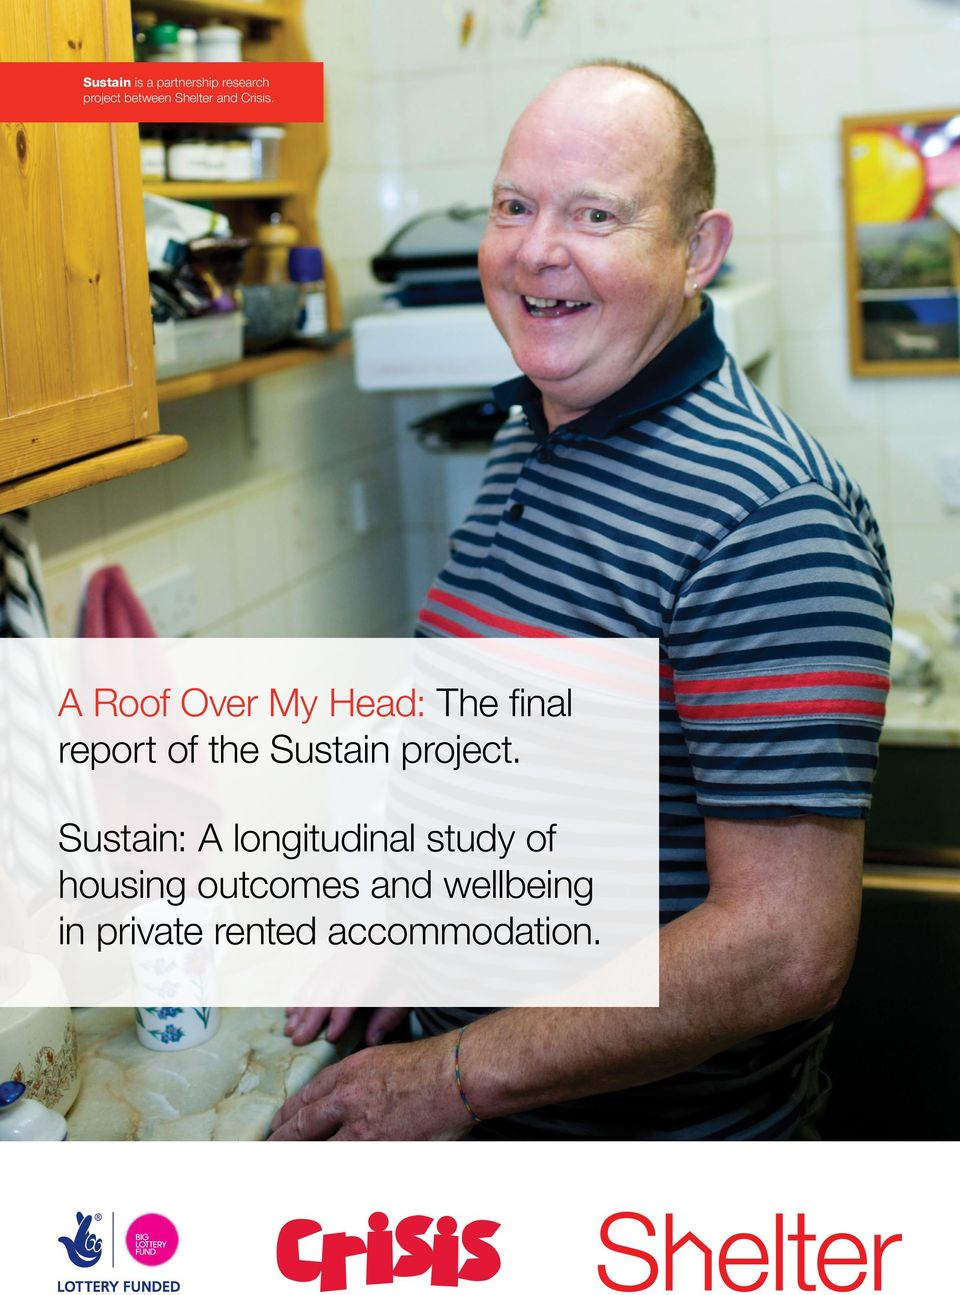 A Roof Over My Head: The final report of the Sustain